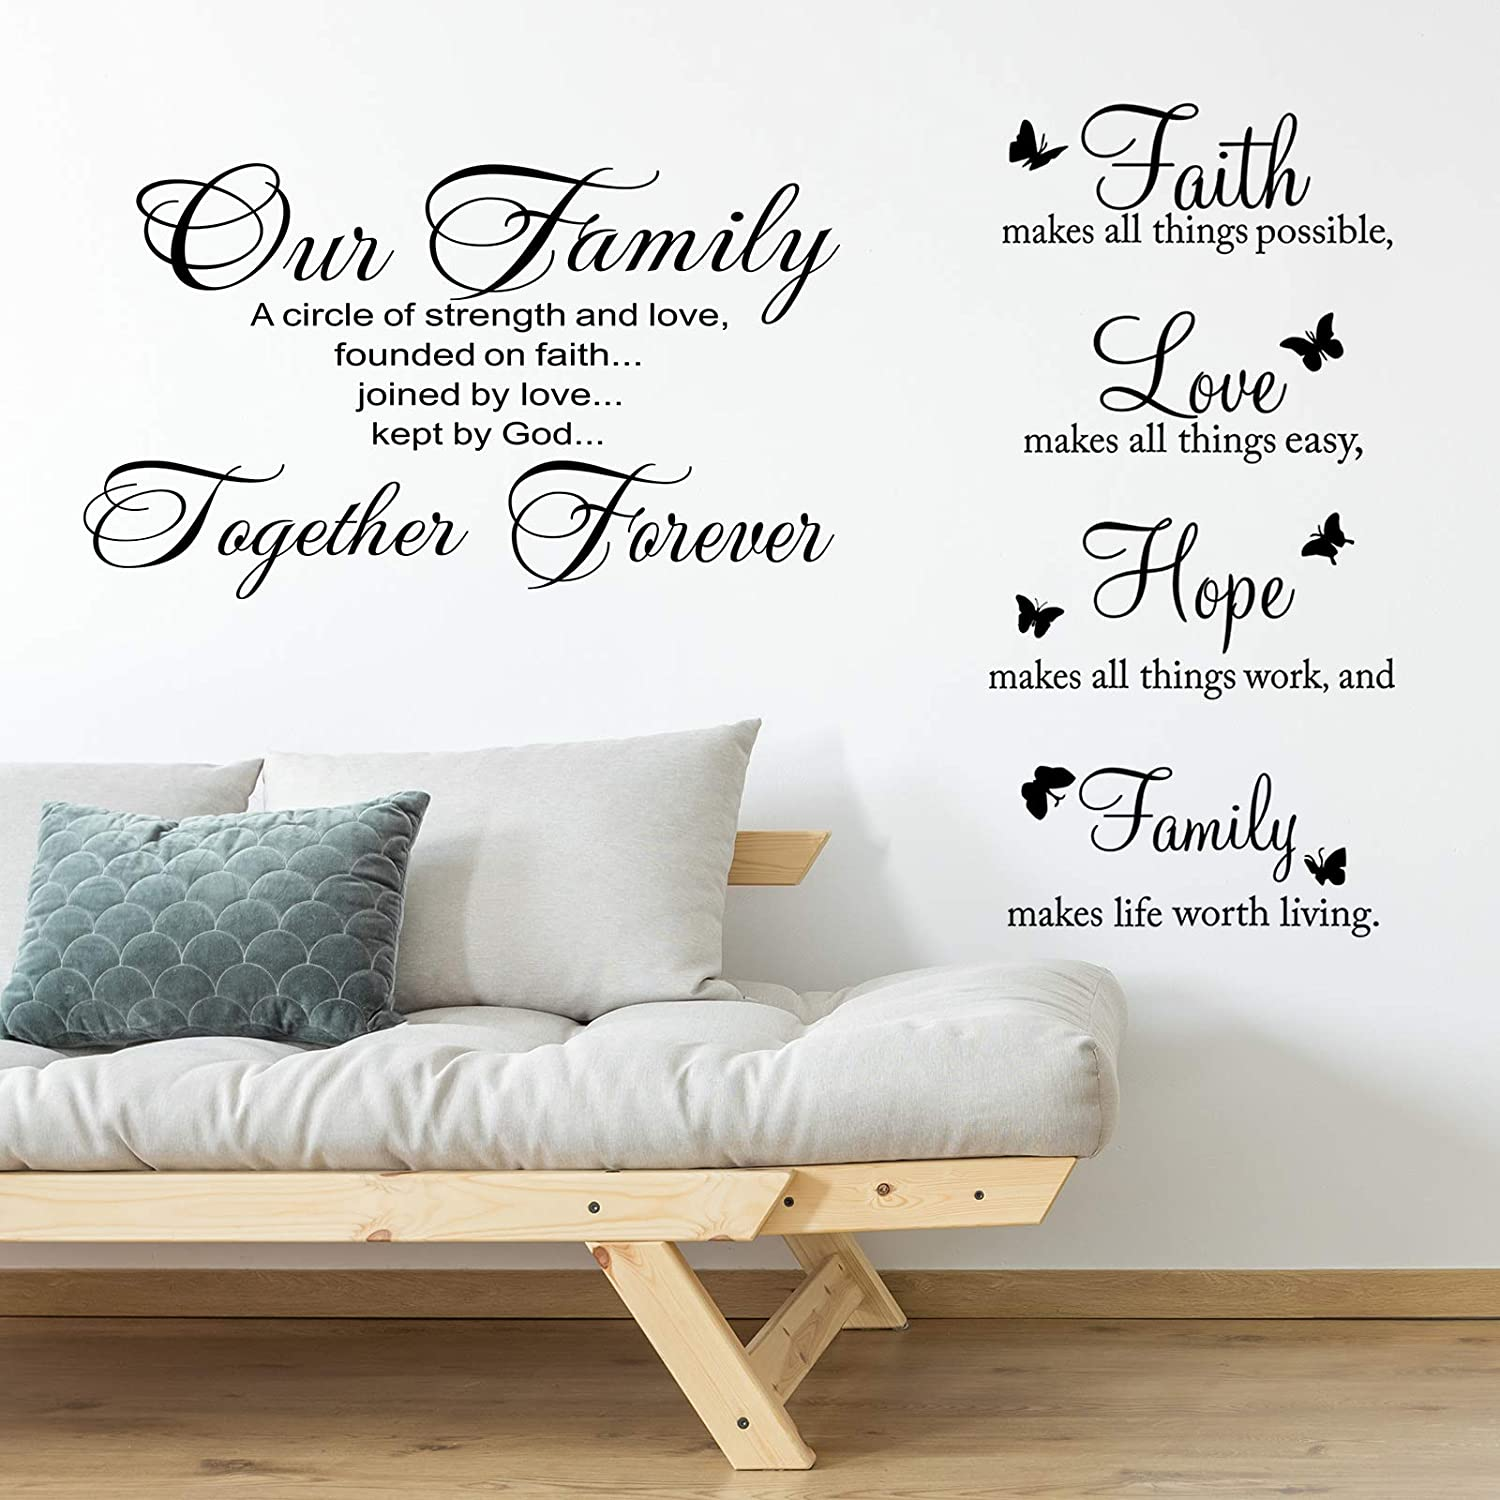 2 Pieces Vinyl Wall Quotes Stickers Faith Hope Love Family Scripture Wall Stickers Bible Verse Inspirational Sayings for Home Office School Classroom Teen Dorm Living Room Art Wall Decorations